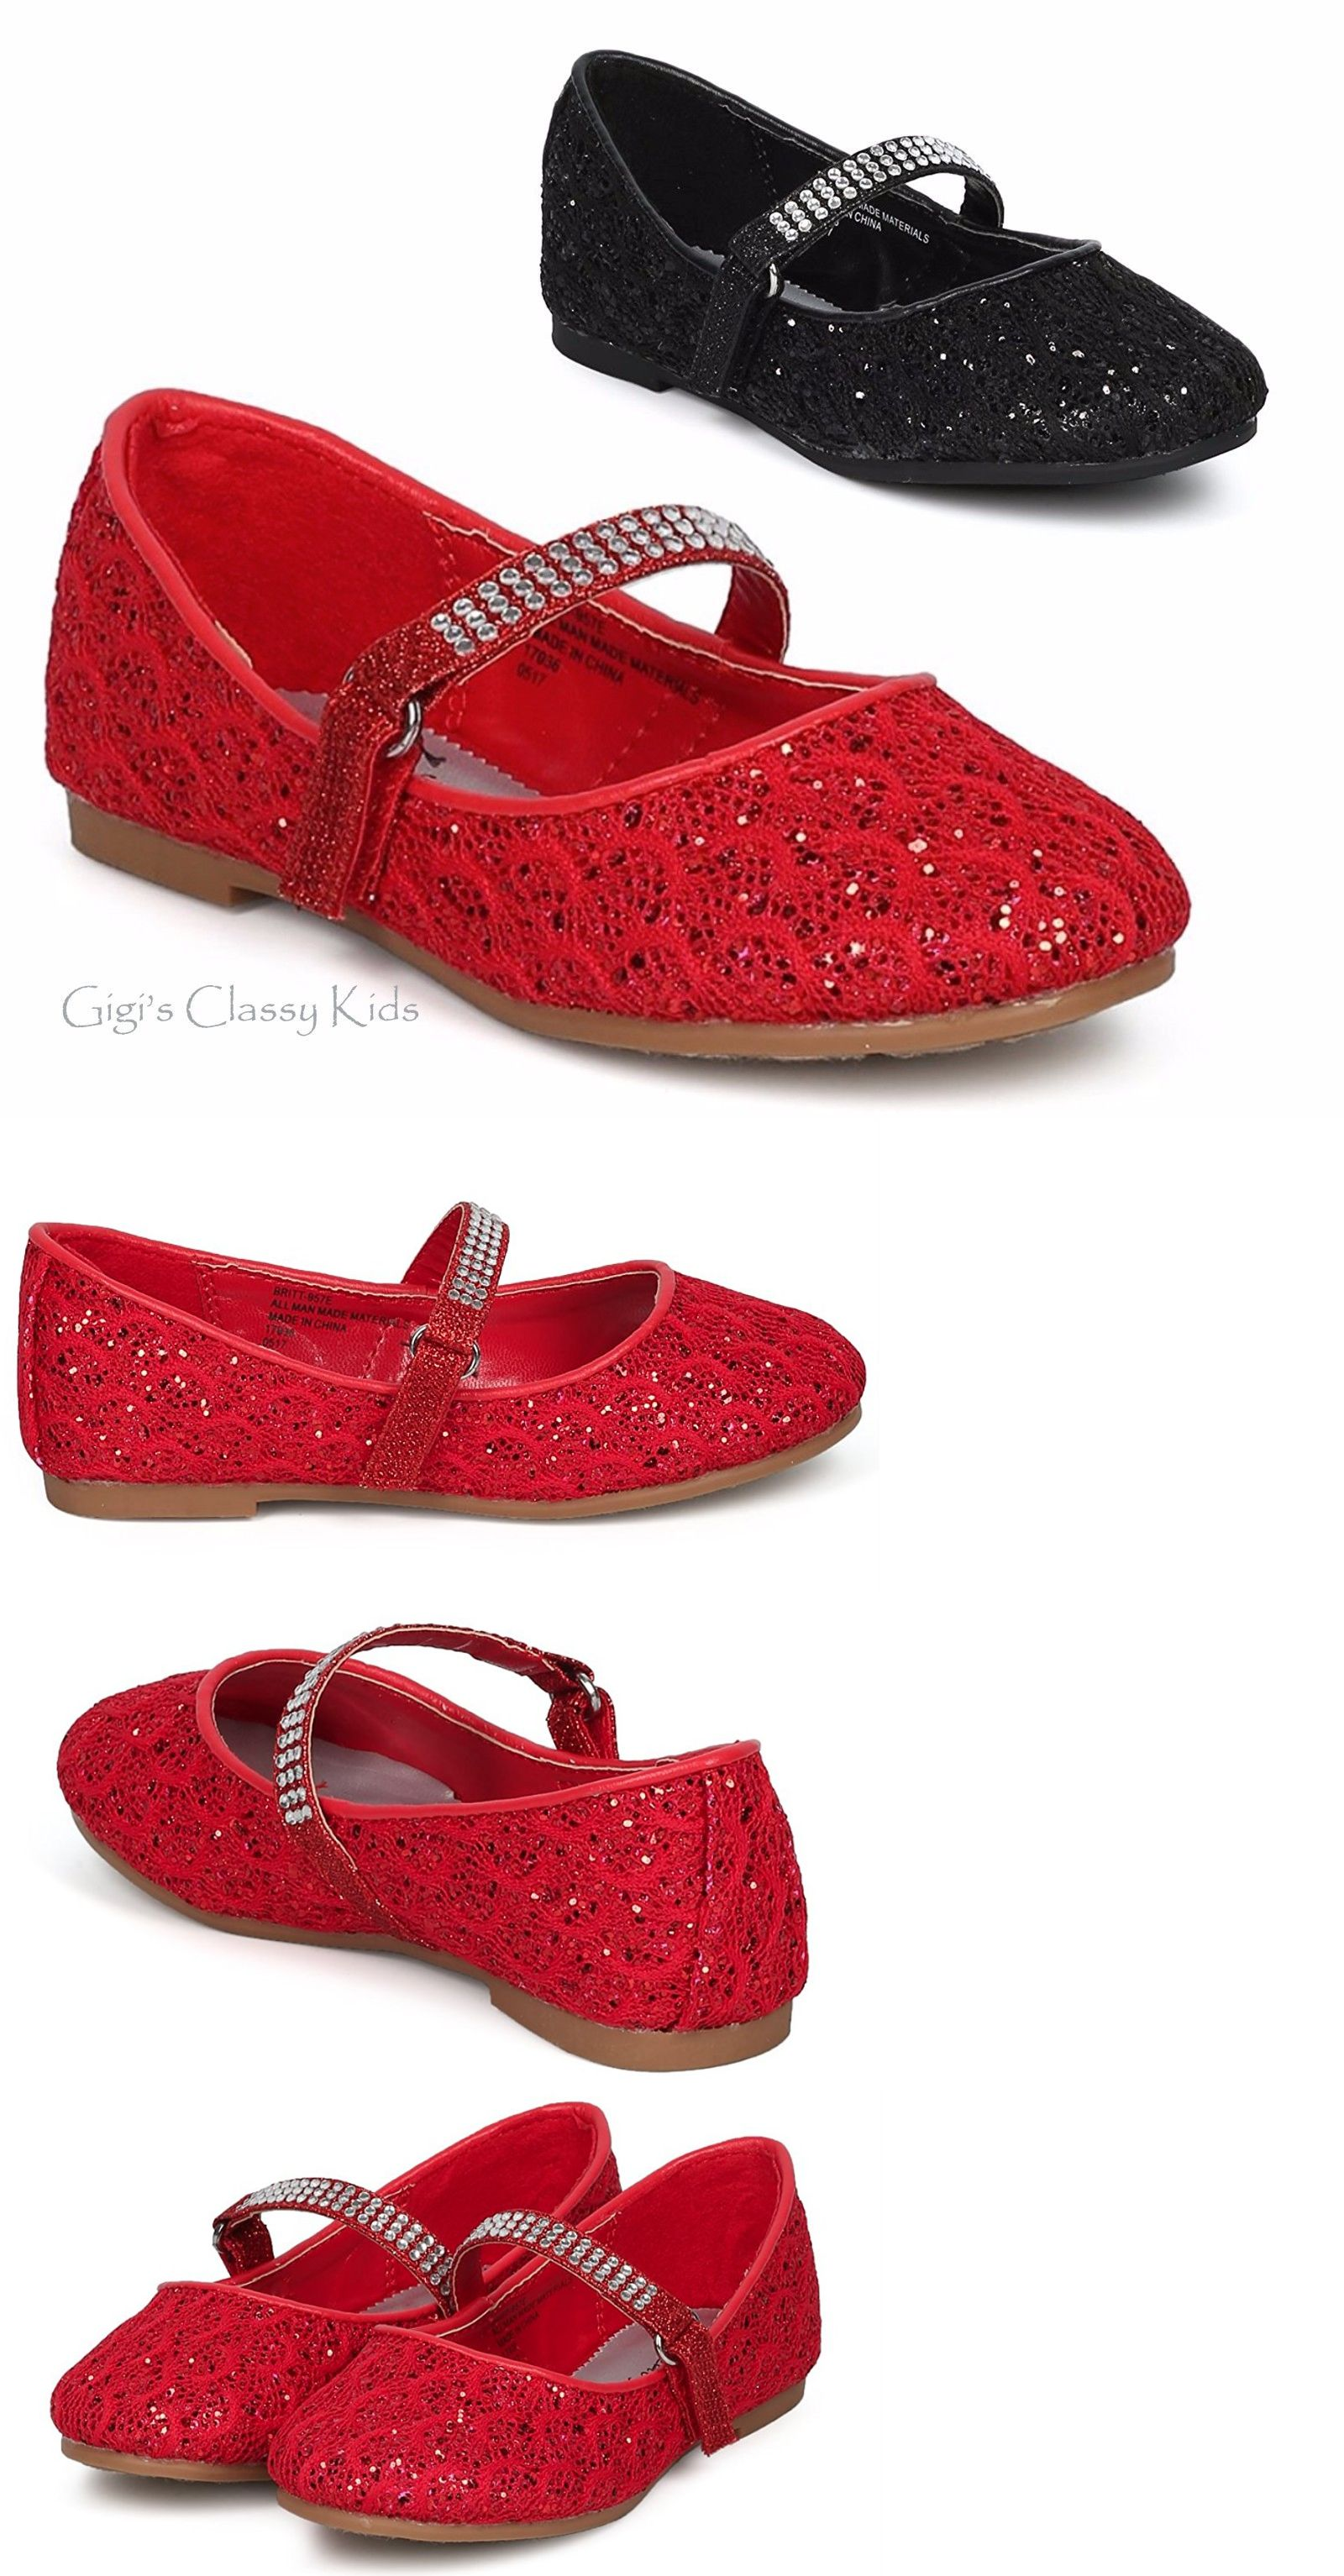 Baby Shoes 147285  New Girls Black Red Glitter Dress Shoes Flats Christmas  Dorothy Kids Youth Party -  BUY IT NOW ONLY   19.99 on  eBay  shoes  girls   black ... 24d2f356d